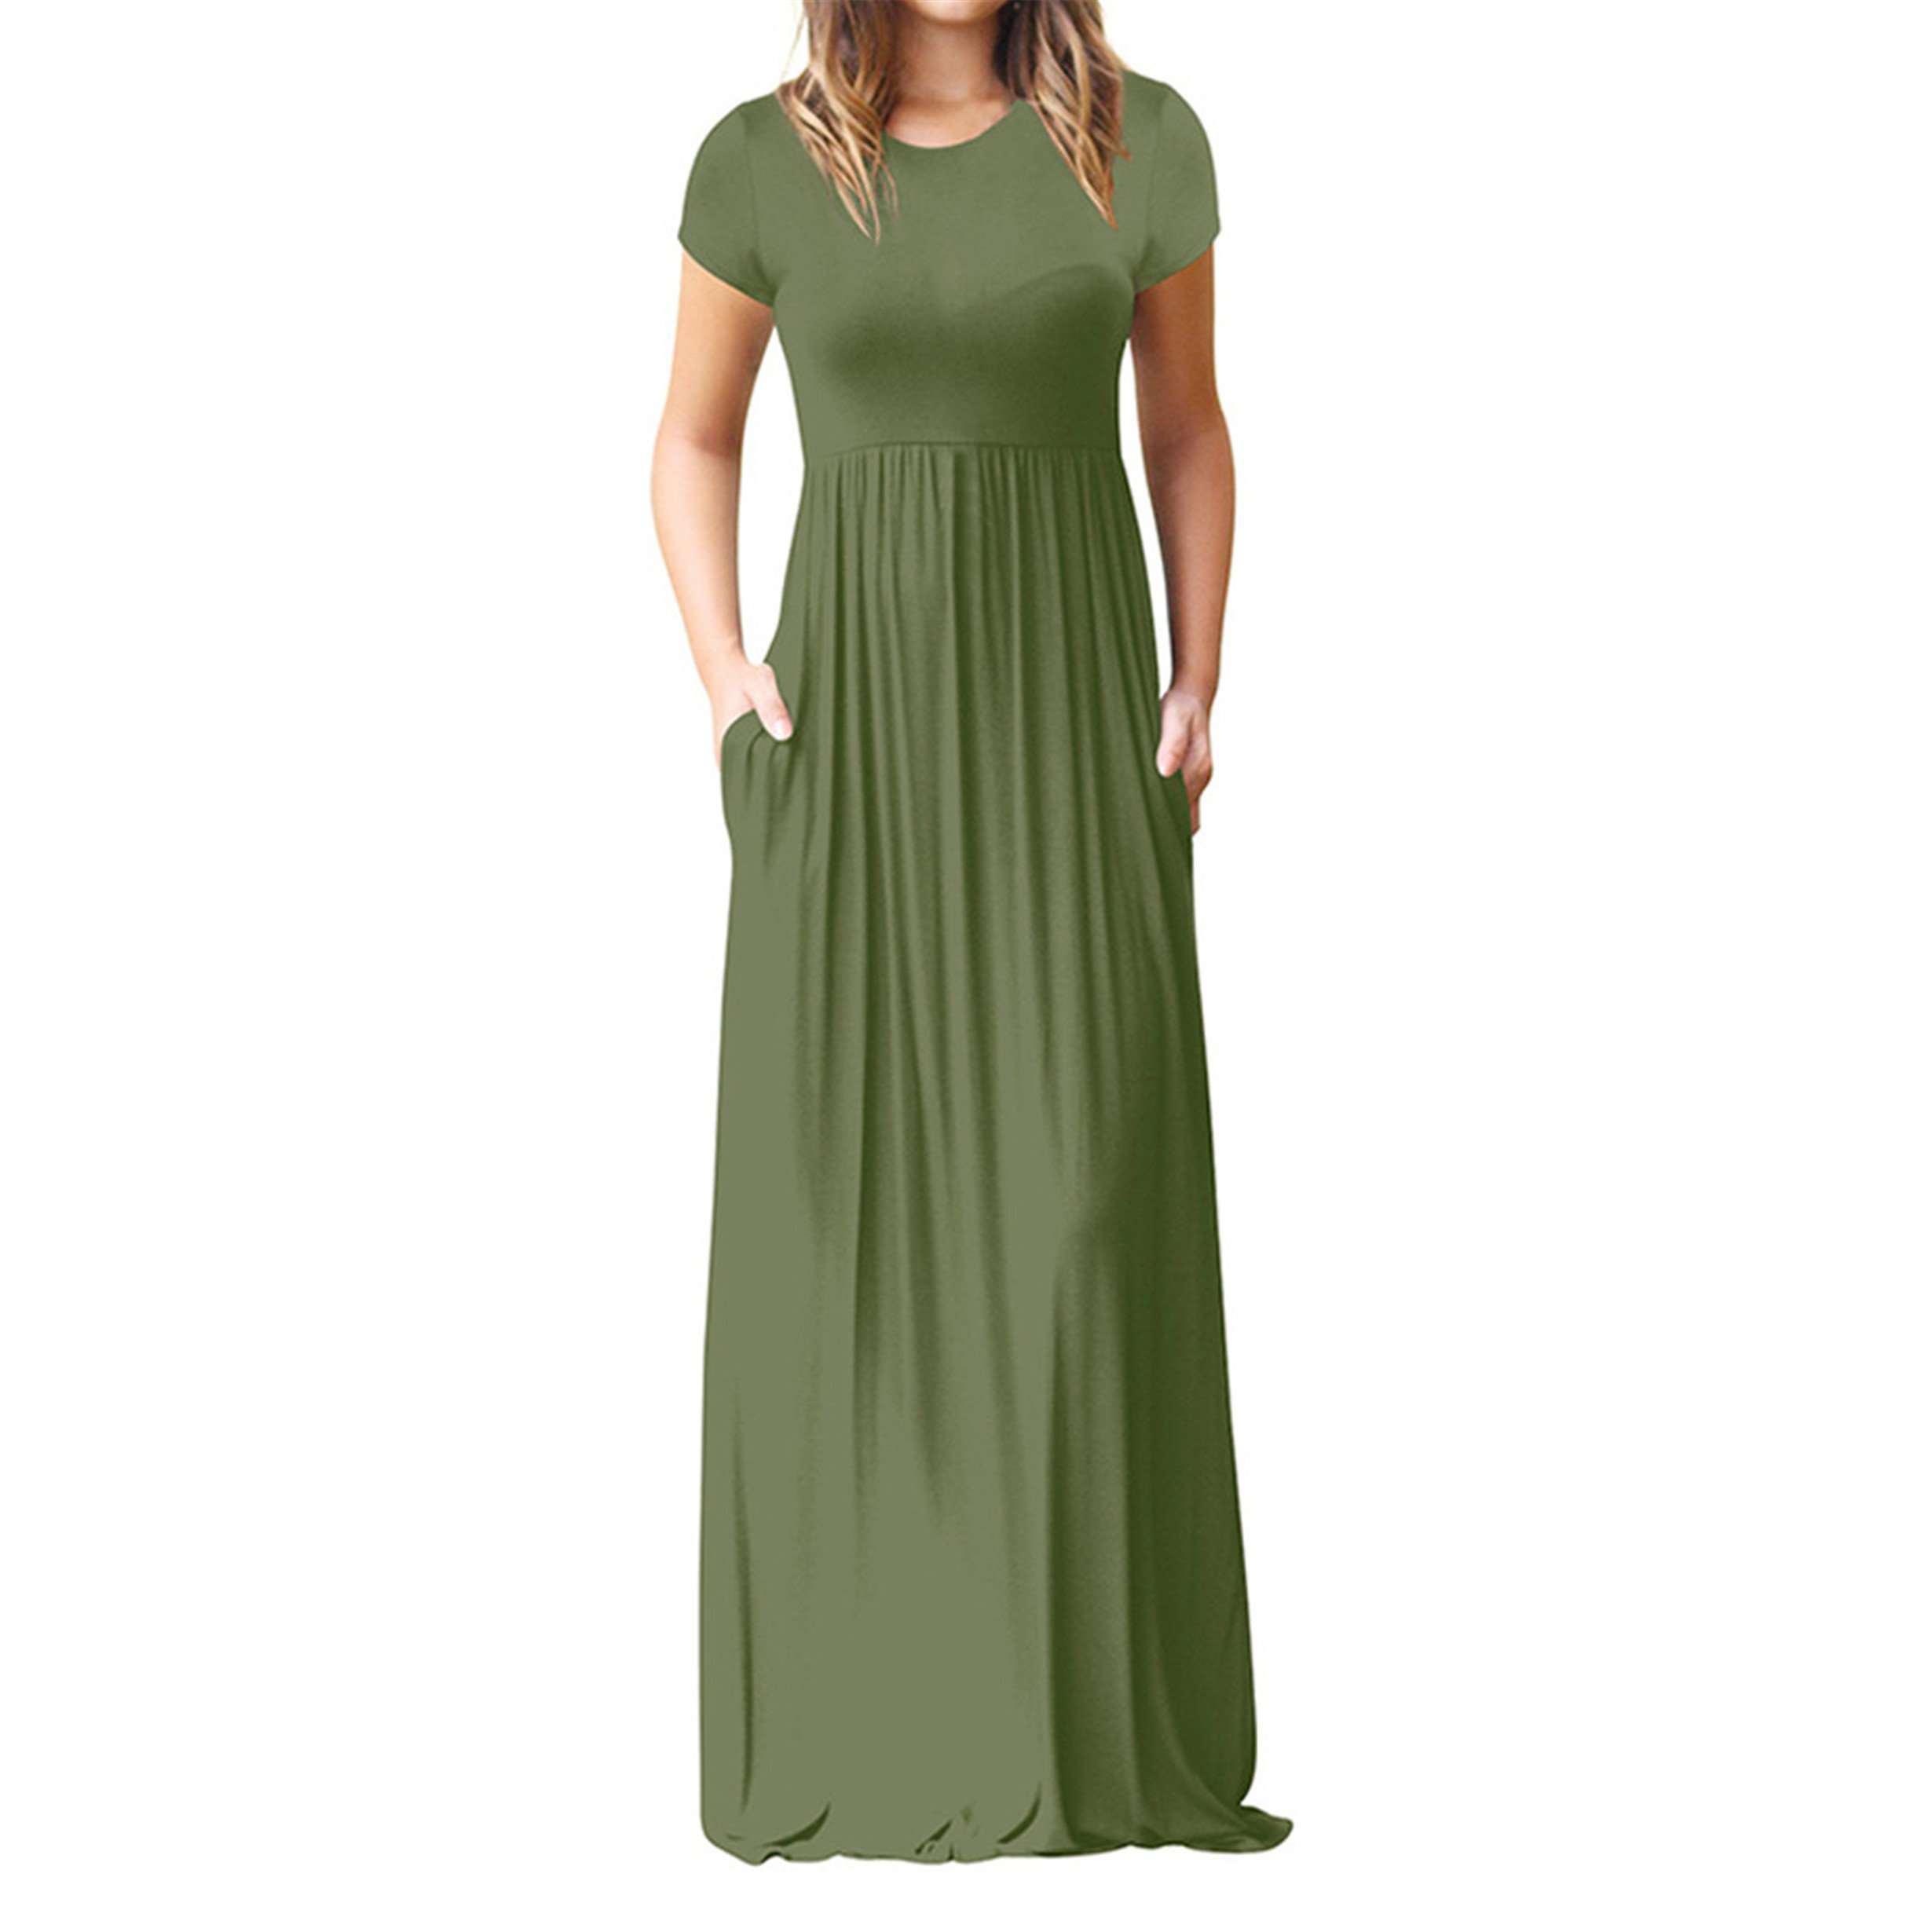 Hot ! Women's Short Sleeve Casual Swing Tunic T Shirt Dress With Pocket Maxi Dress (Green ღ, XL)